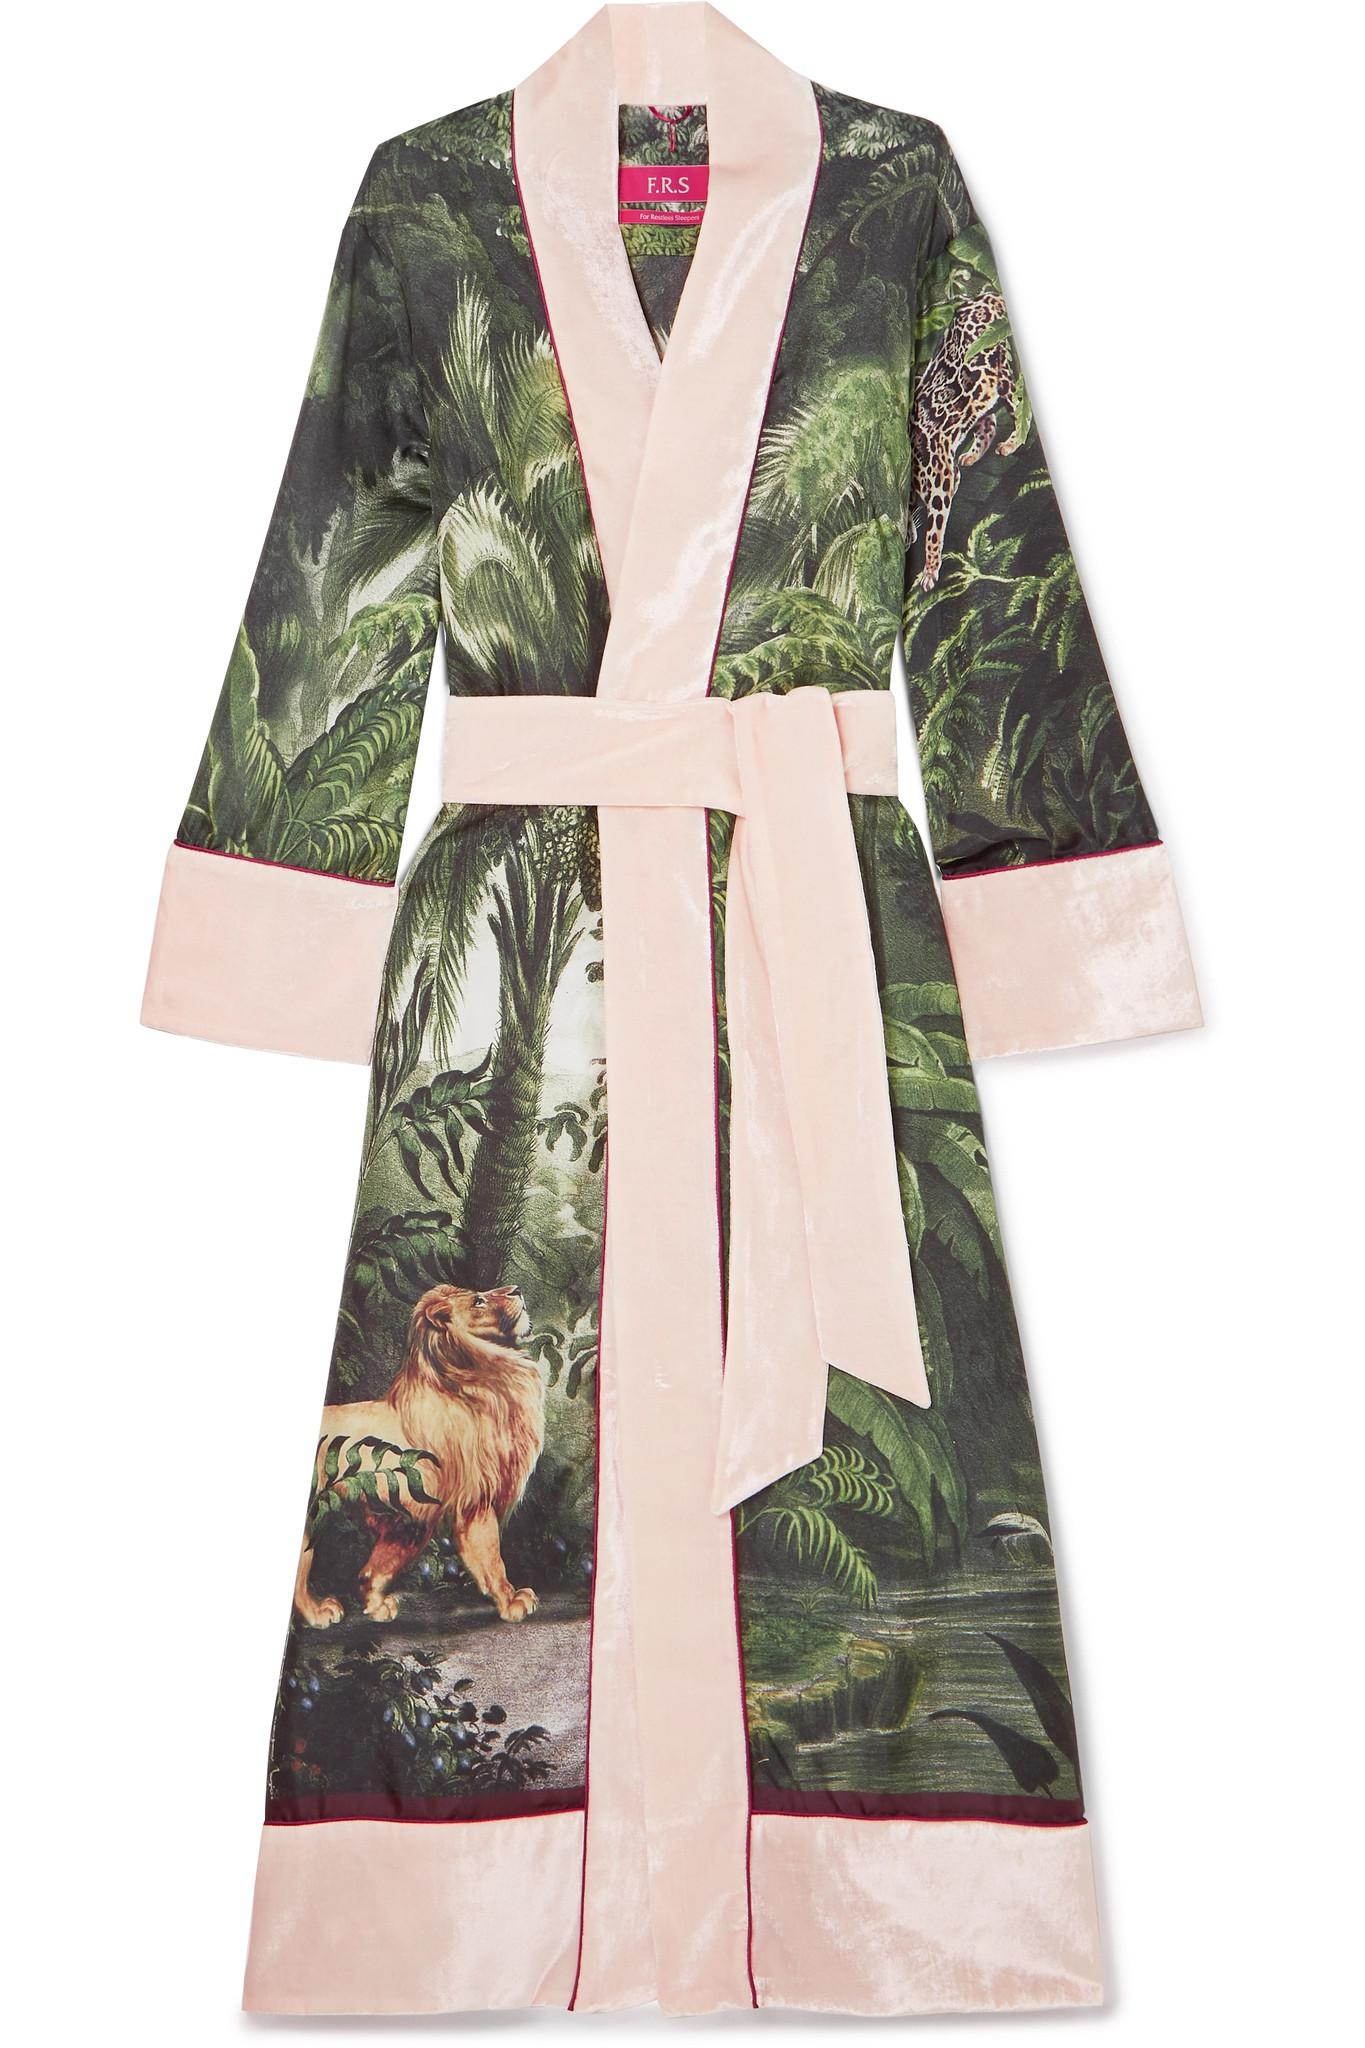 F.R.S For restless sleepers Nomos velvet-trimmed printed silk-twill robe, Available at net-a-porter